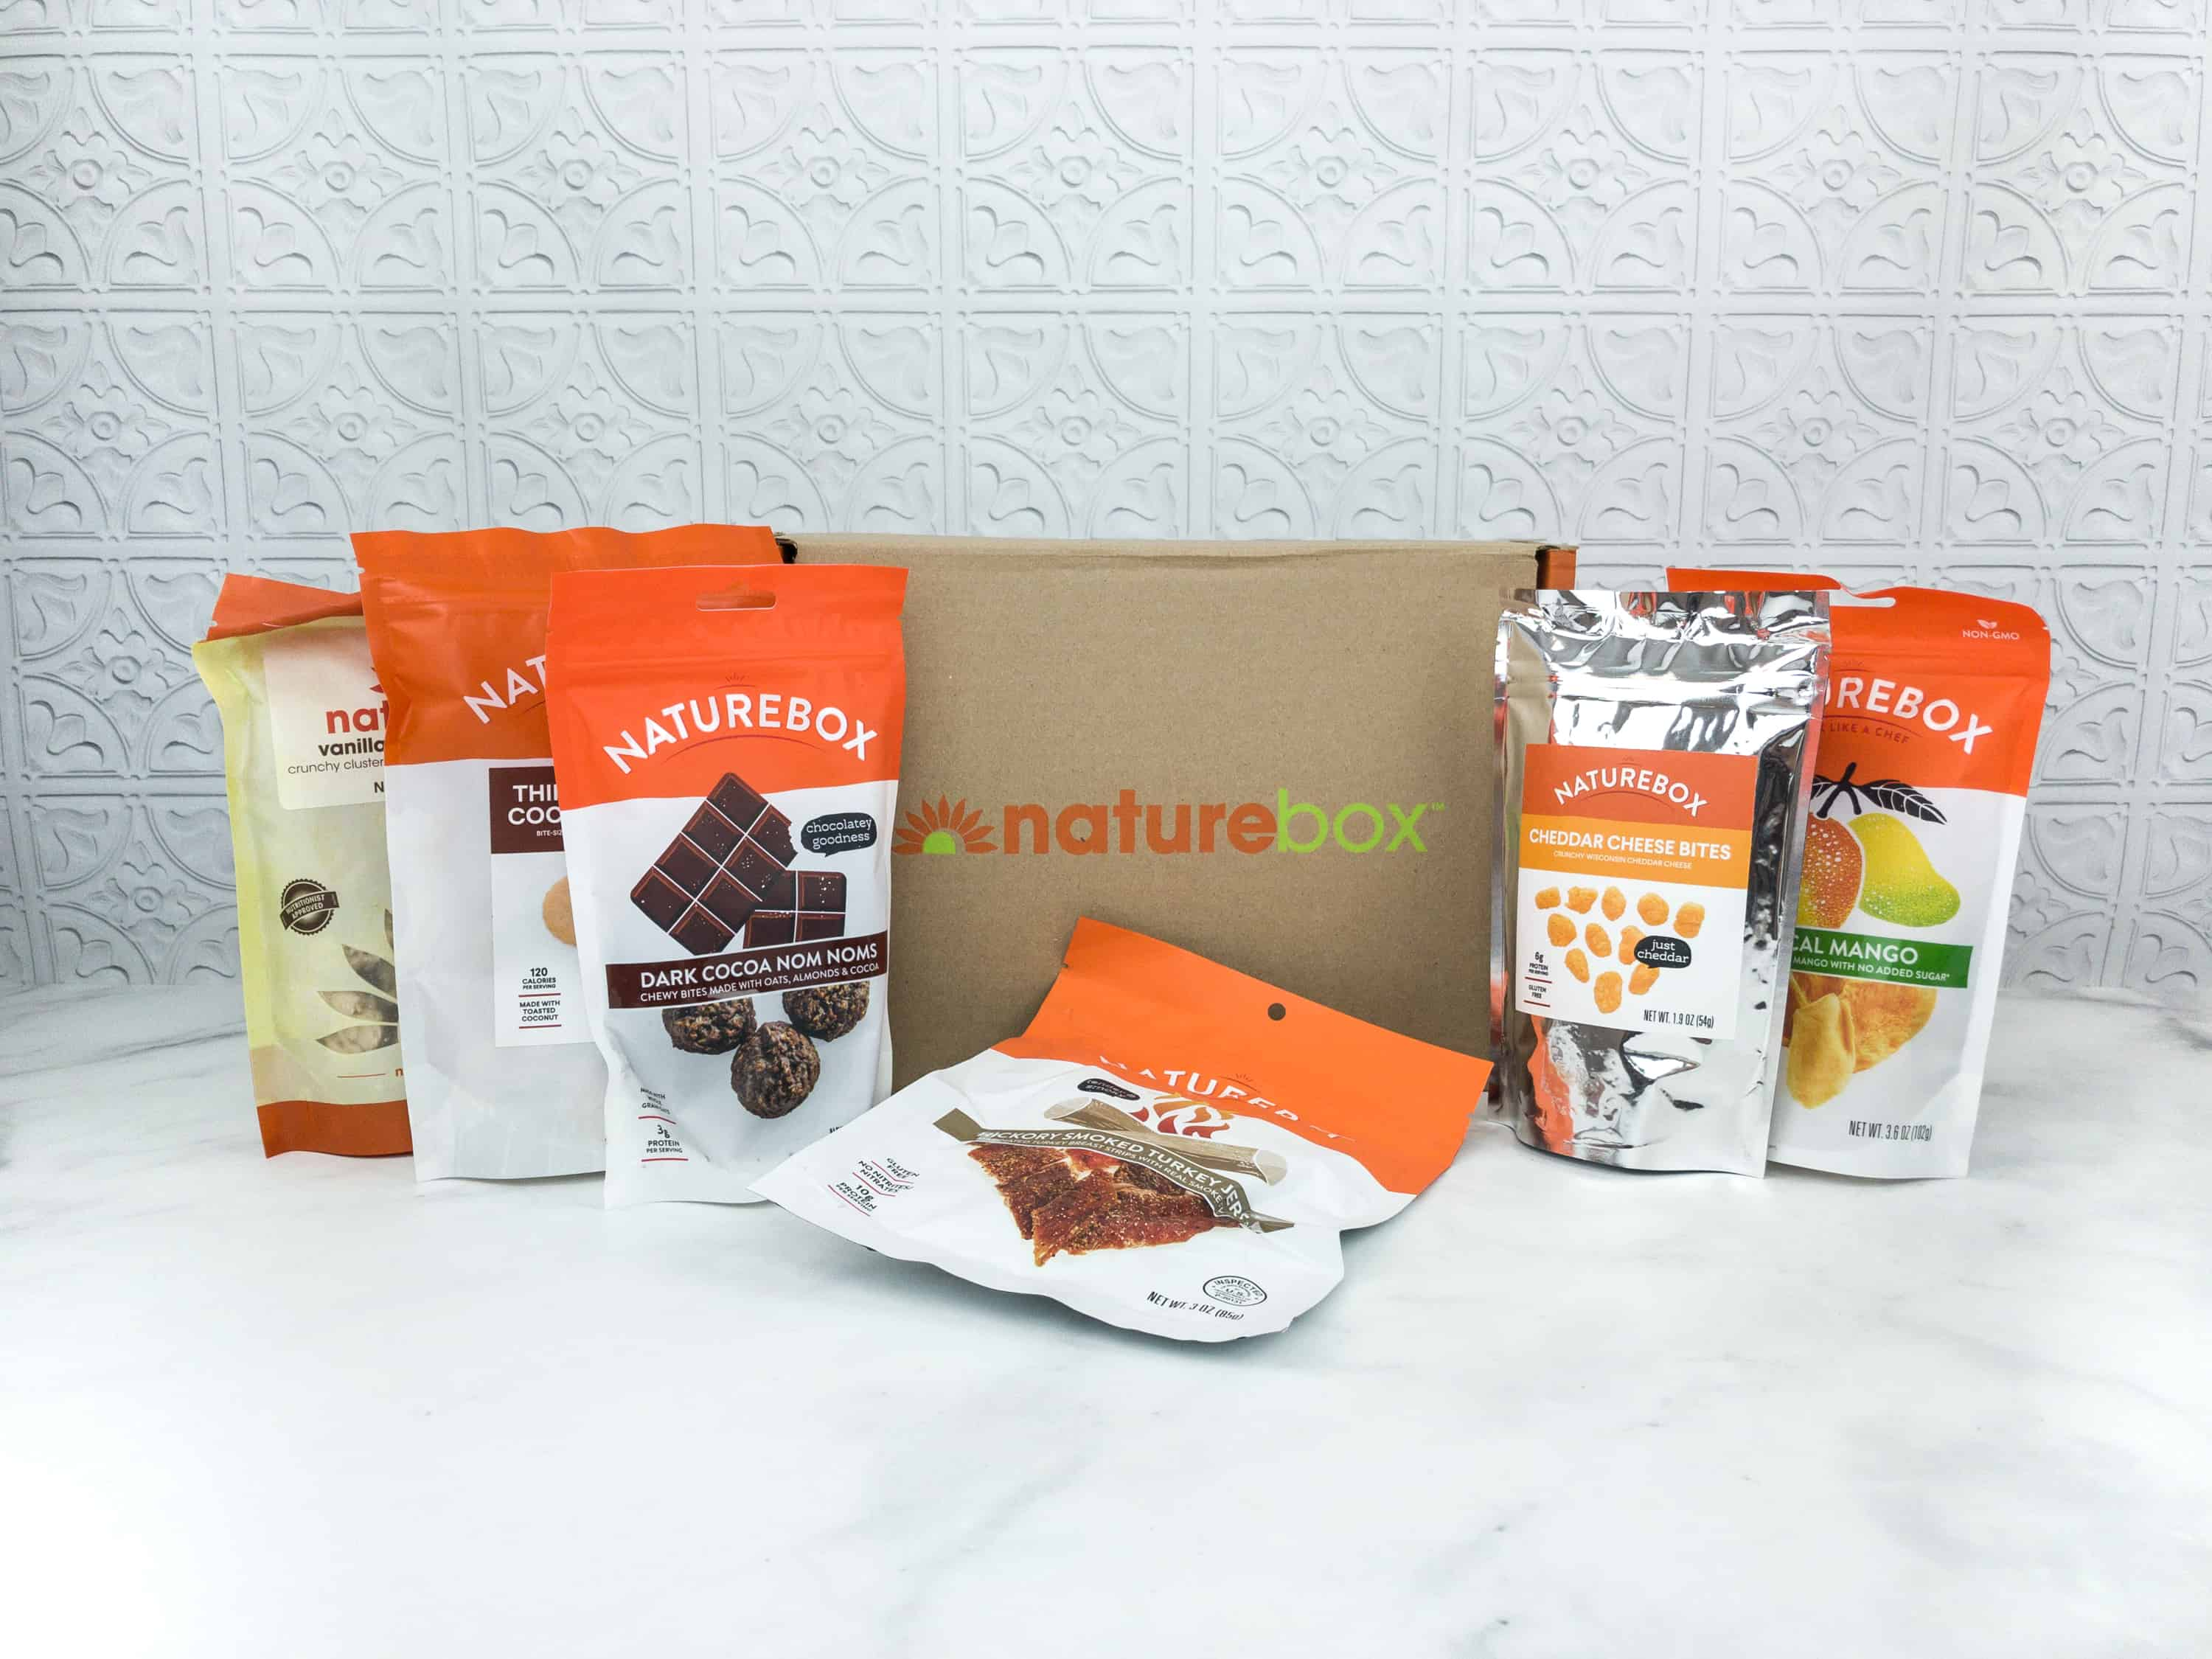 NatureBox Discovery Box Fall 2018 Subscription Box Review + Coupon!